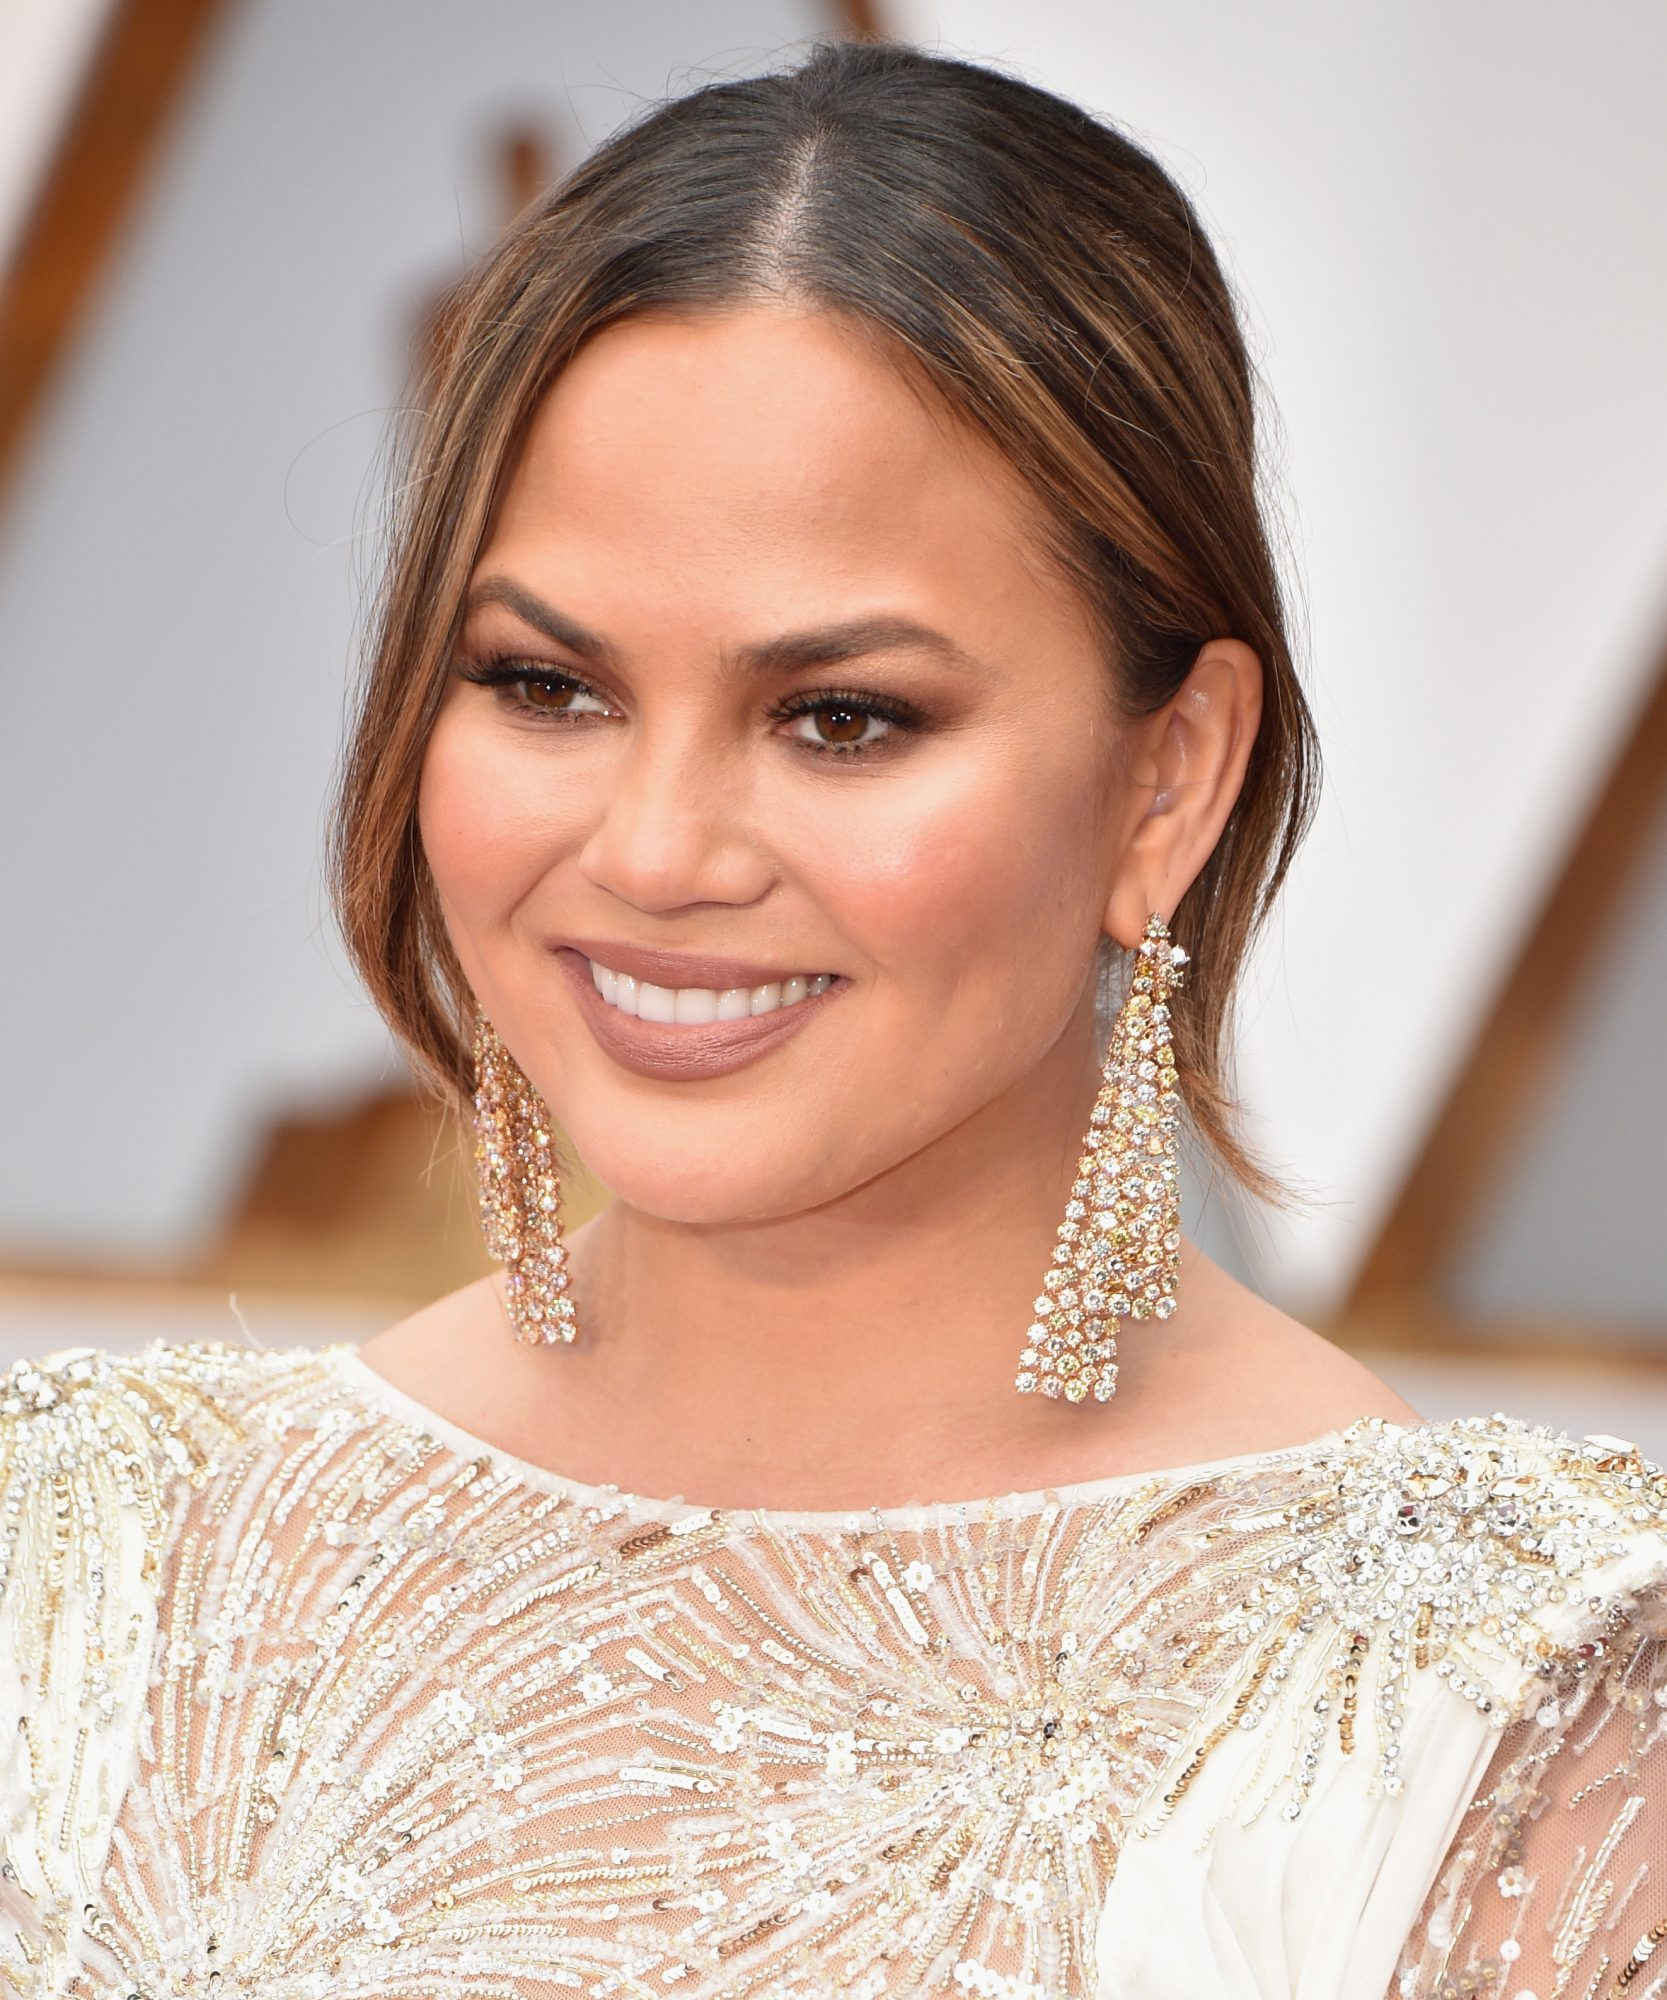 Why Chrissy Teigen Is Giving Up Spray Tans